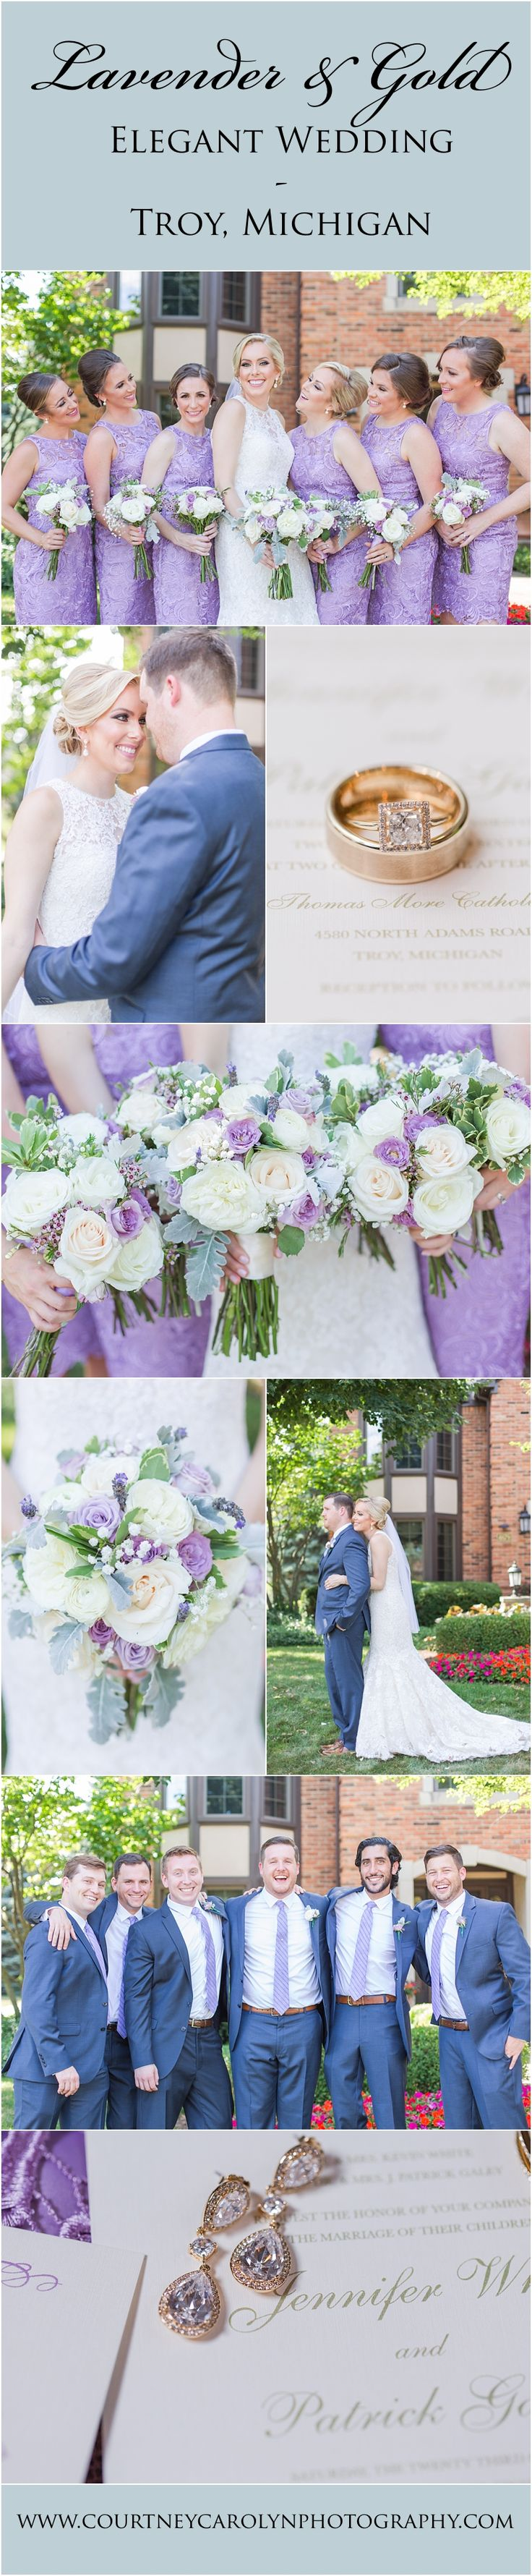 Lavender and Champagne Gold Wedding Day  Colors and Inspiration. Purple and Lavender wedding flowers, gold wedding invitations. Bride wore beautiful lace dress, bridesmaids wore purple and lavender dresses, and the groomsmen wore navy suits with purple and lavender ties in Troy, Michigan.